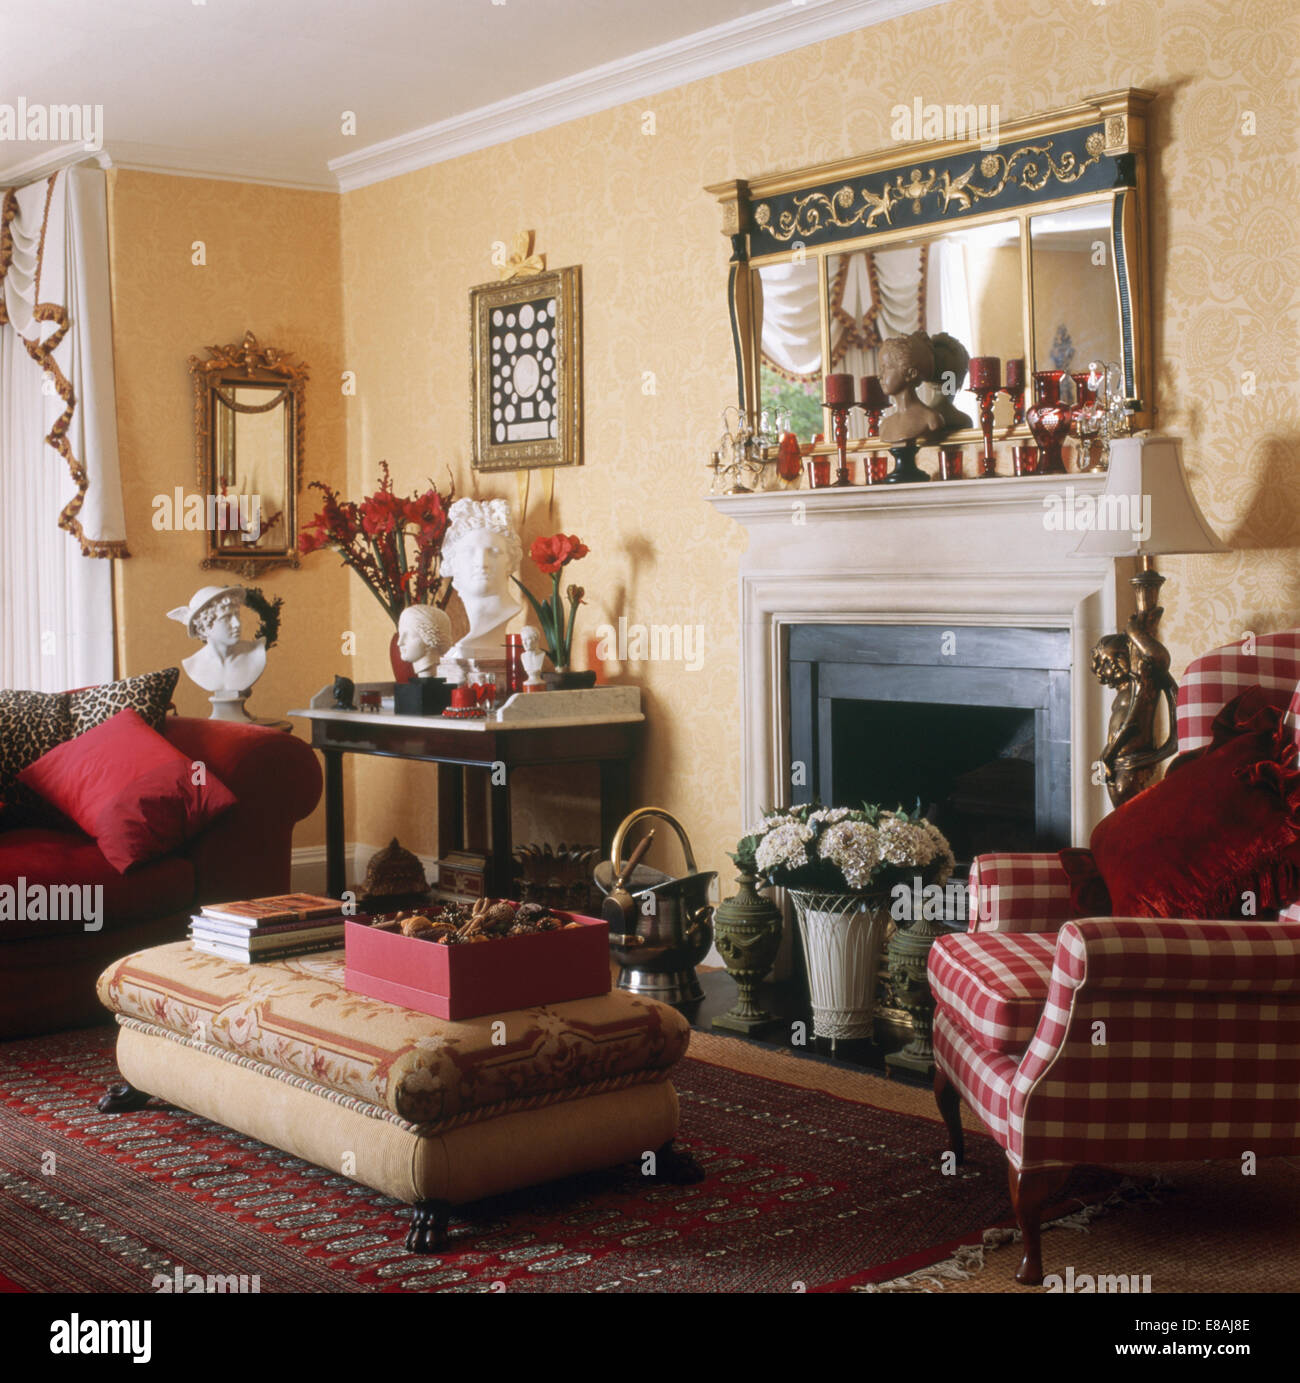 ottoman and red checked armchair beside fireplace with pot of white hydrangeas in traditional living room